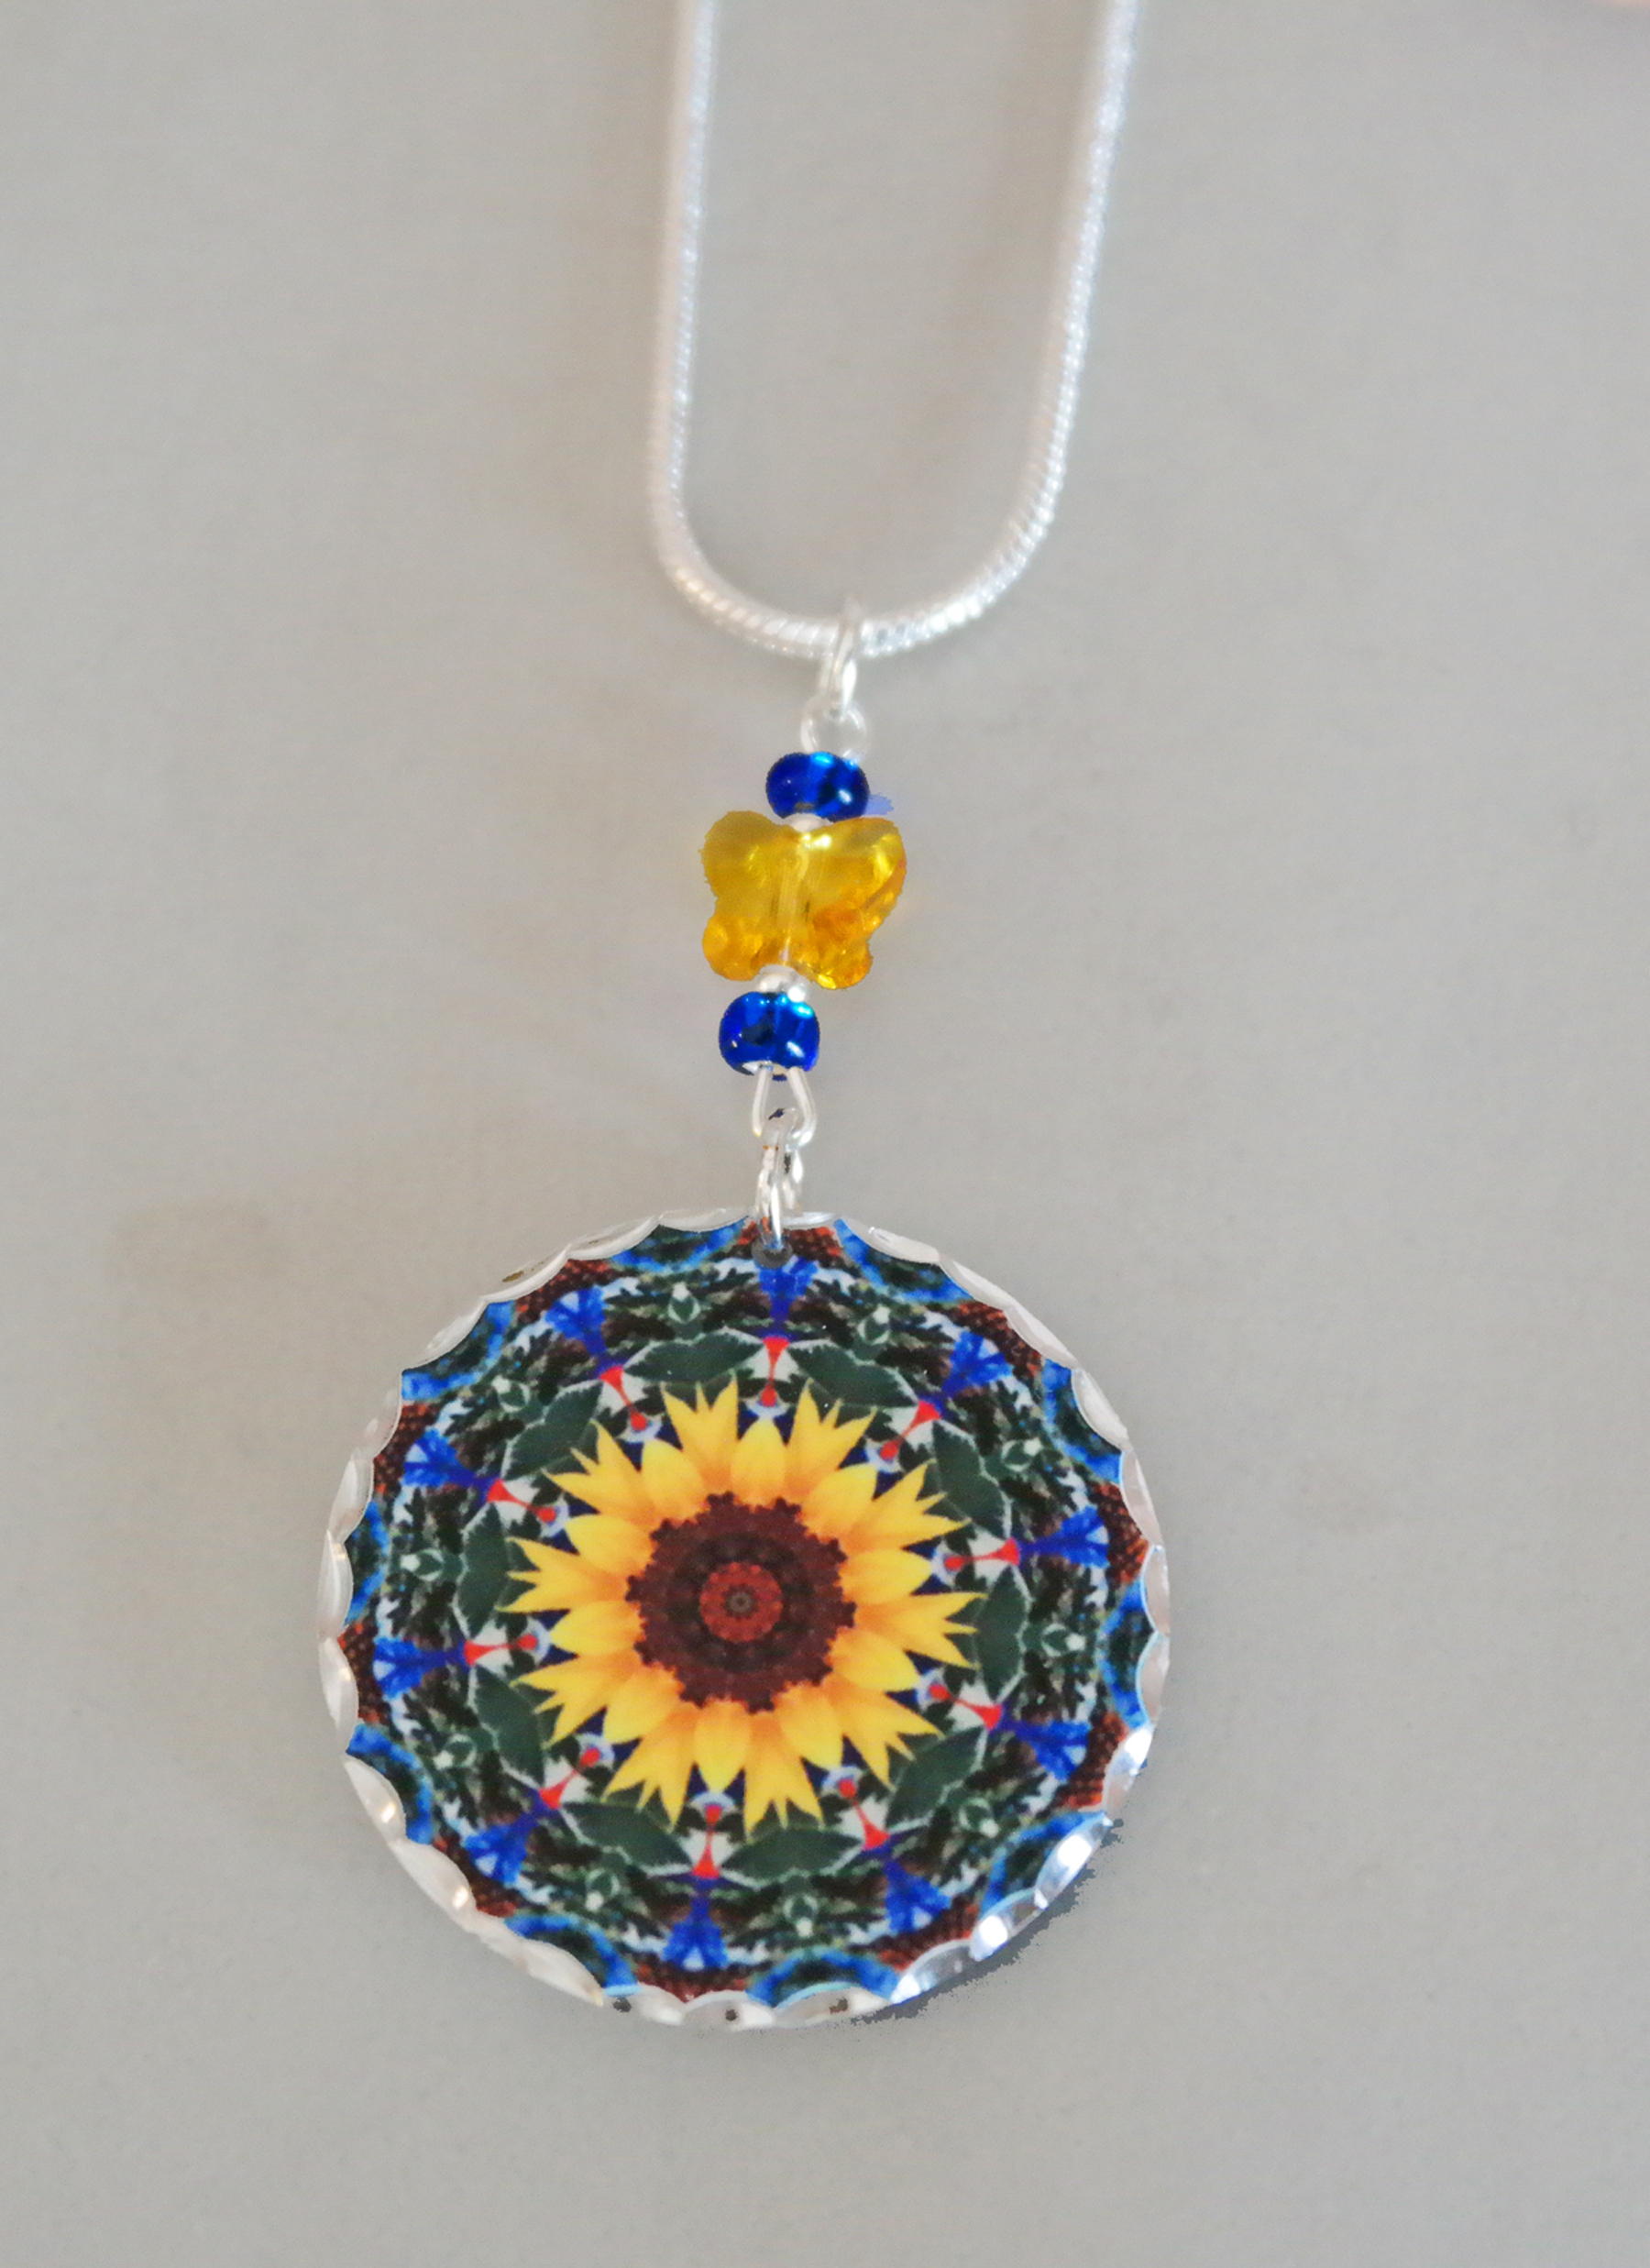 Sunflower Chakra Mandala Pendant Charm Boho Chic New Age Sacred Geometry Hippie Unique Gift For Her Kaleidoscope My Beauty Within